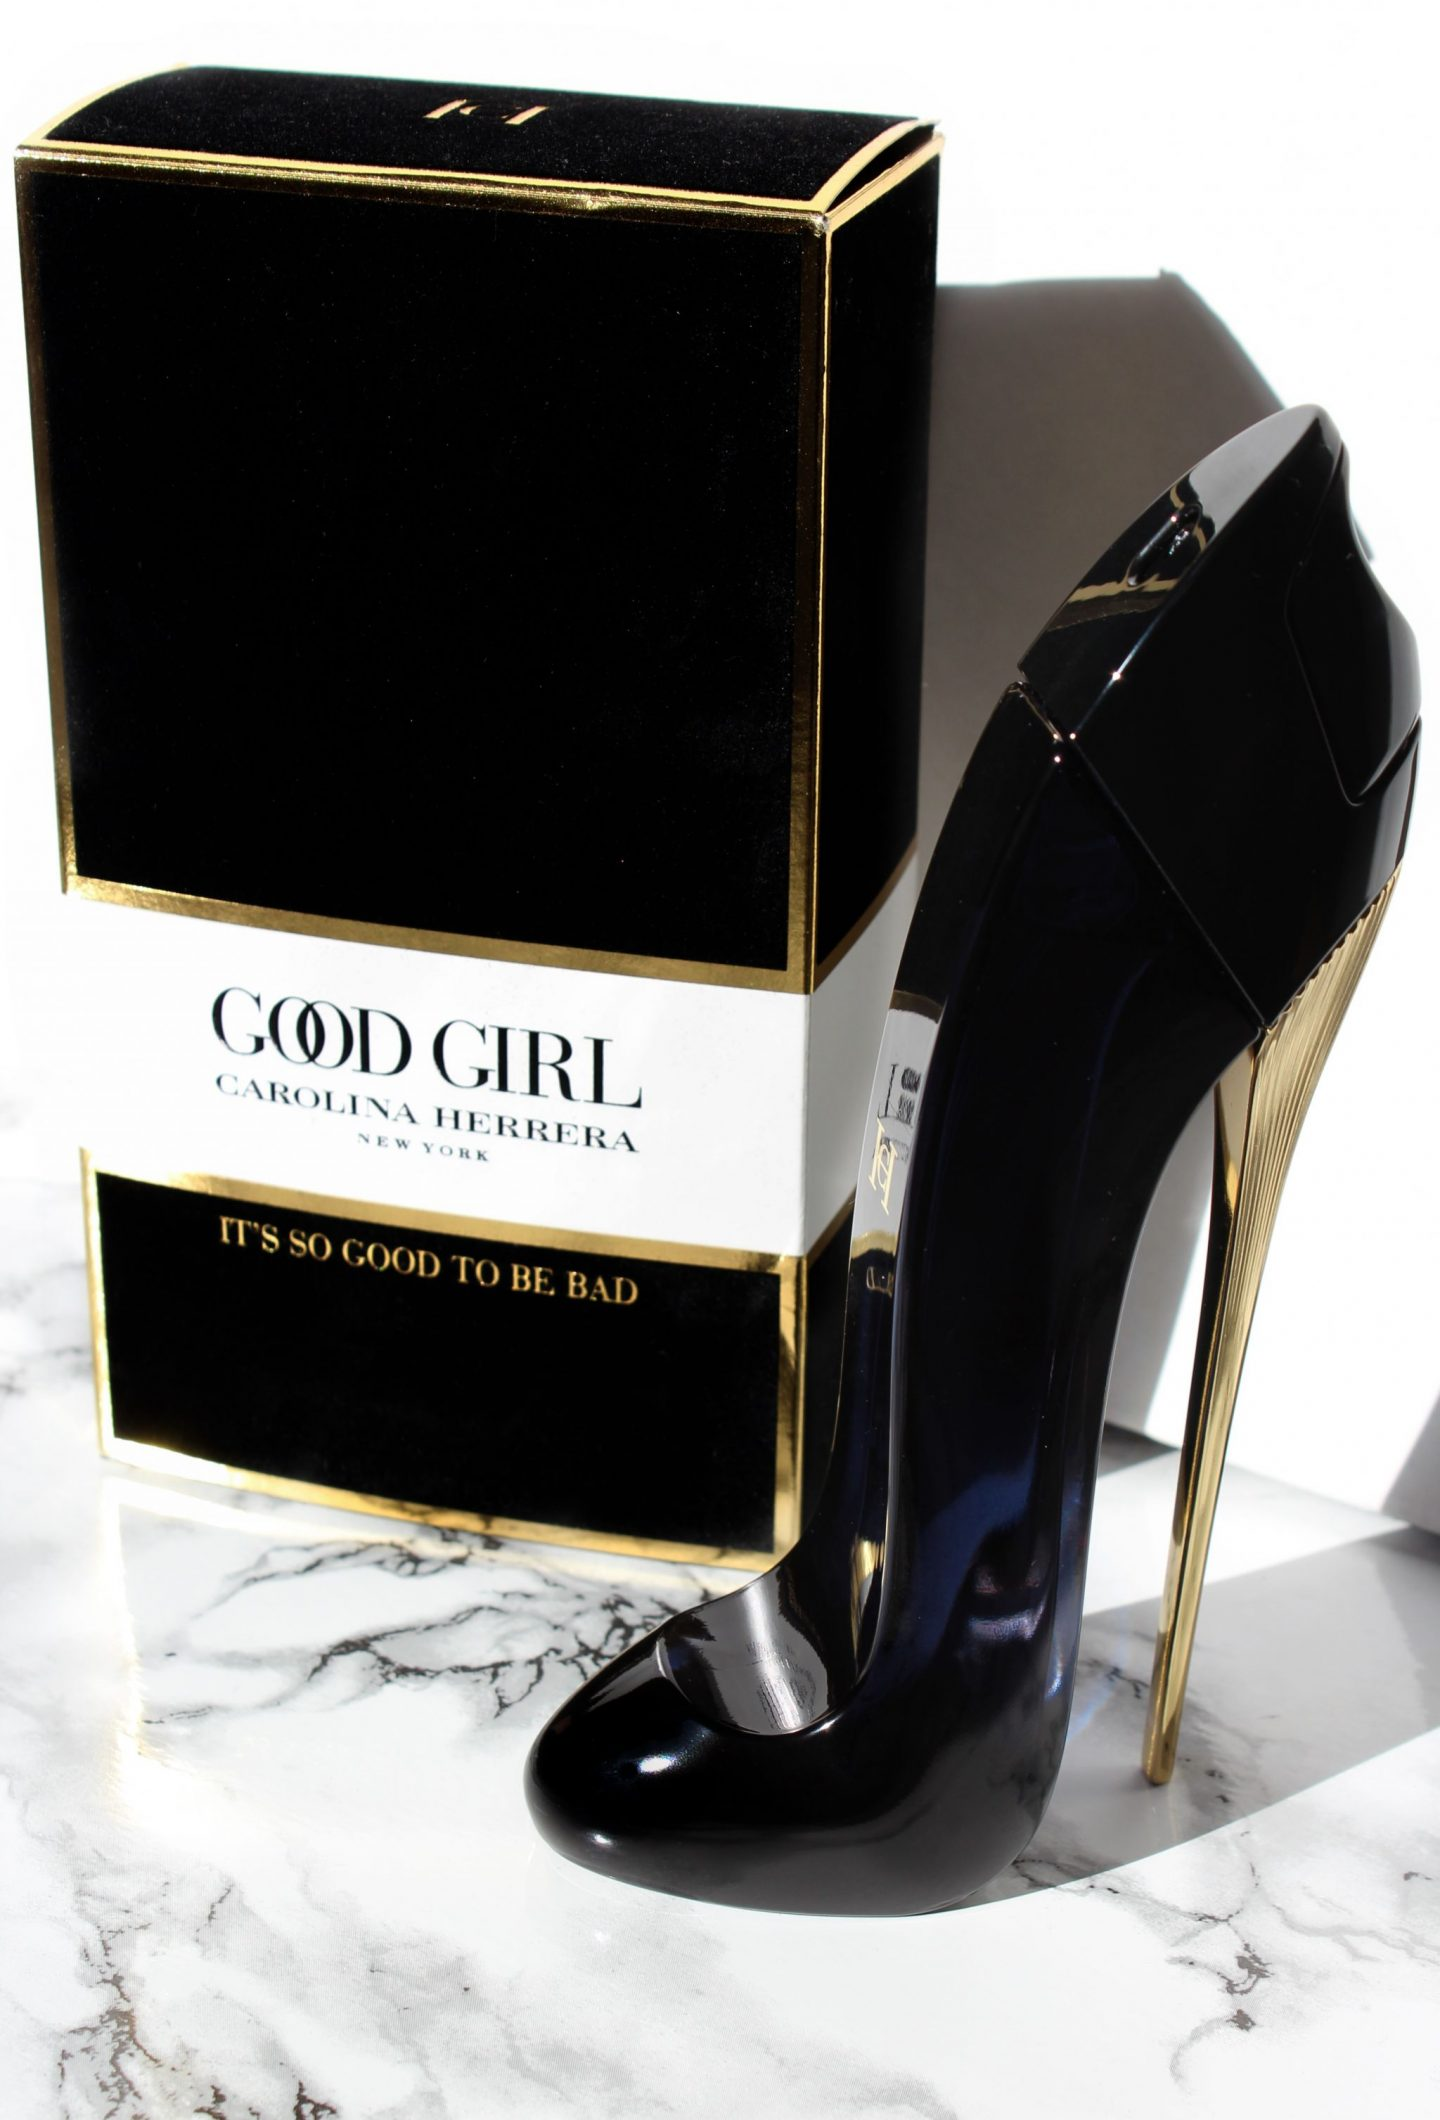 Good Girl Carolina Herrera Review